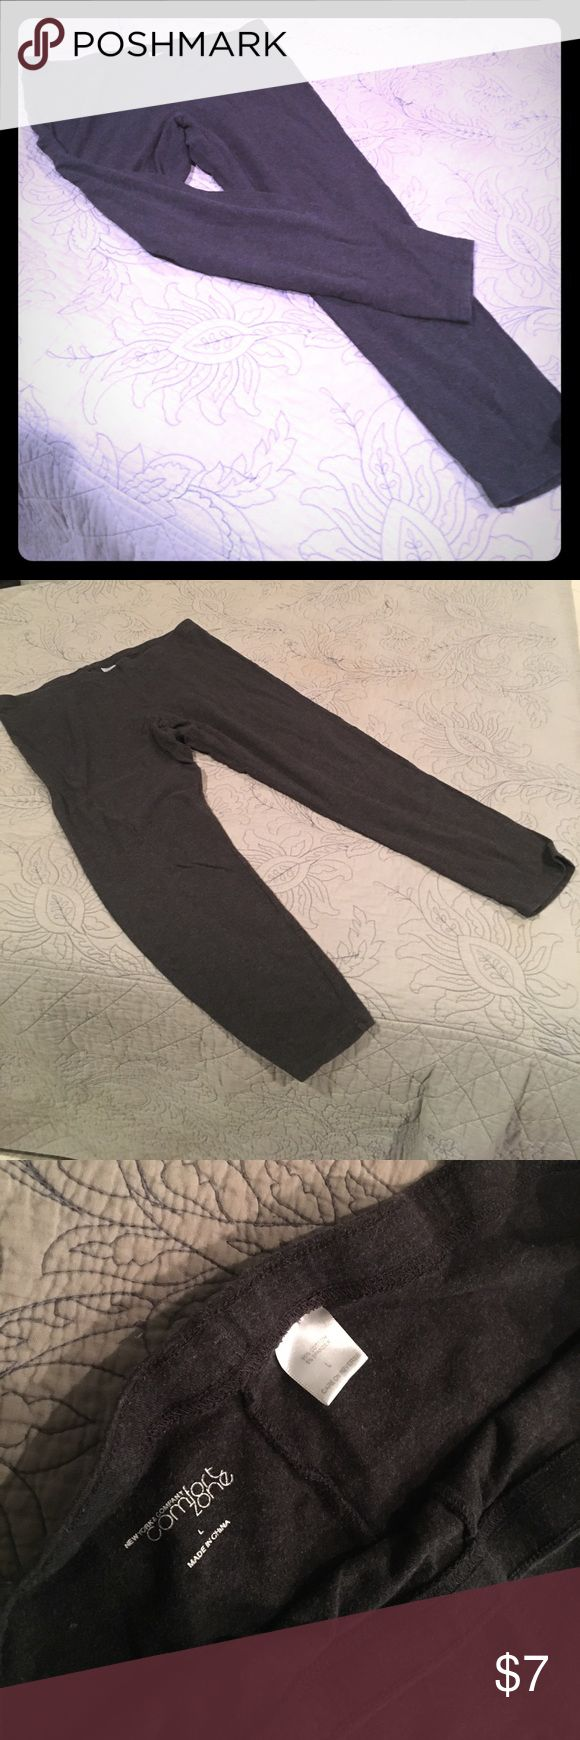 Cropped charcoal leggings from NY & Co Cropped charcoal leggings from NY & Co. super soft. New York & Company Pants Leggings